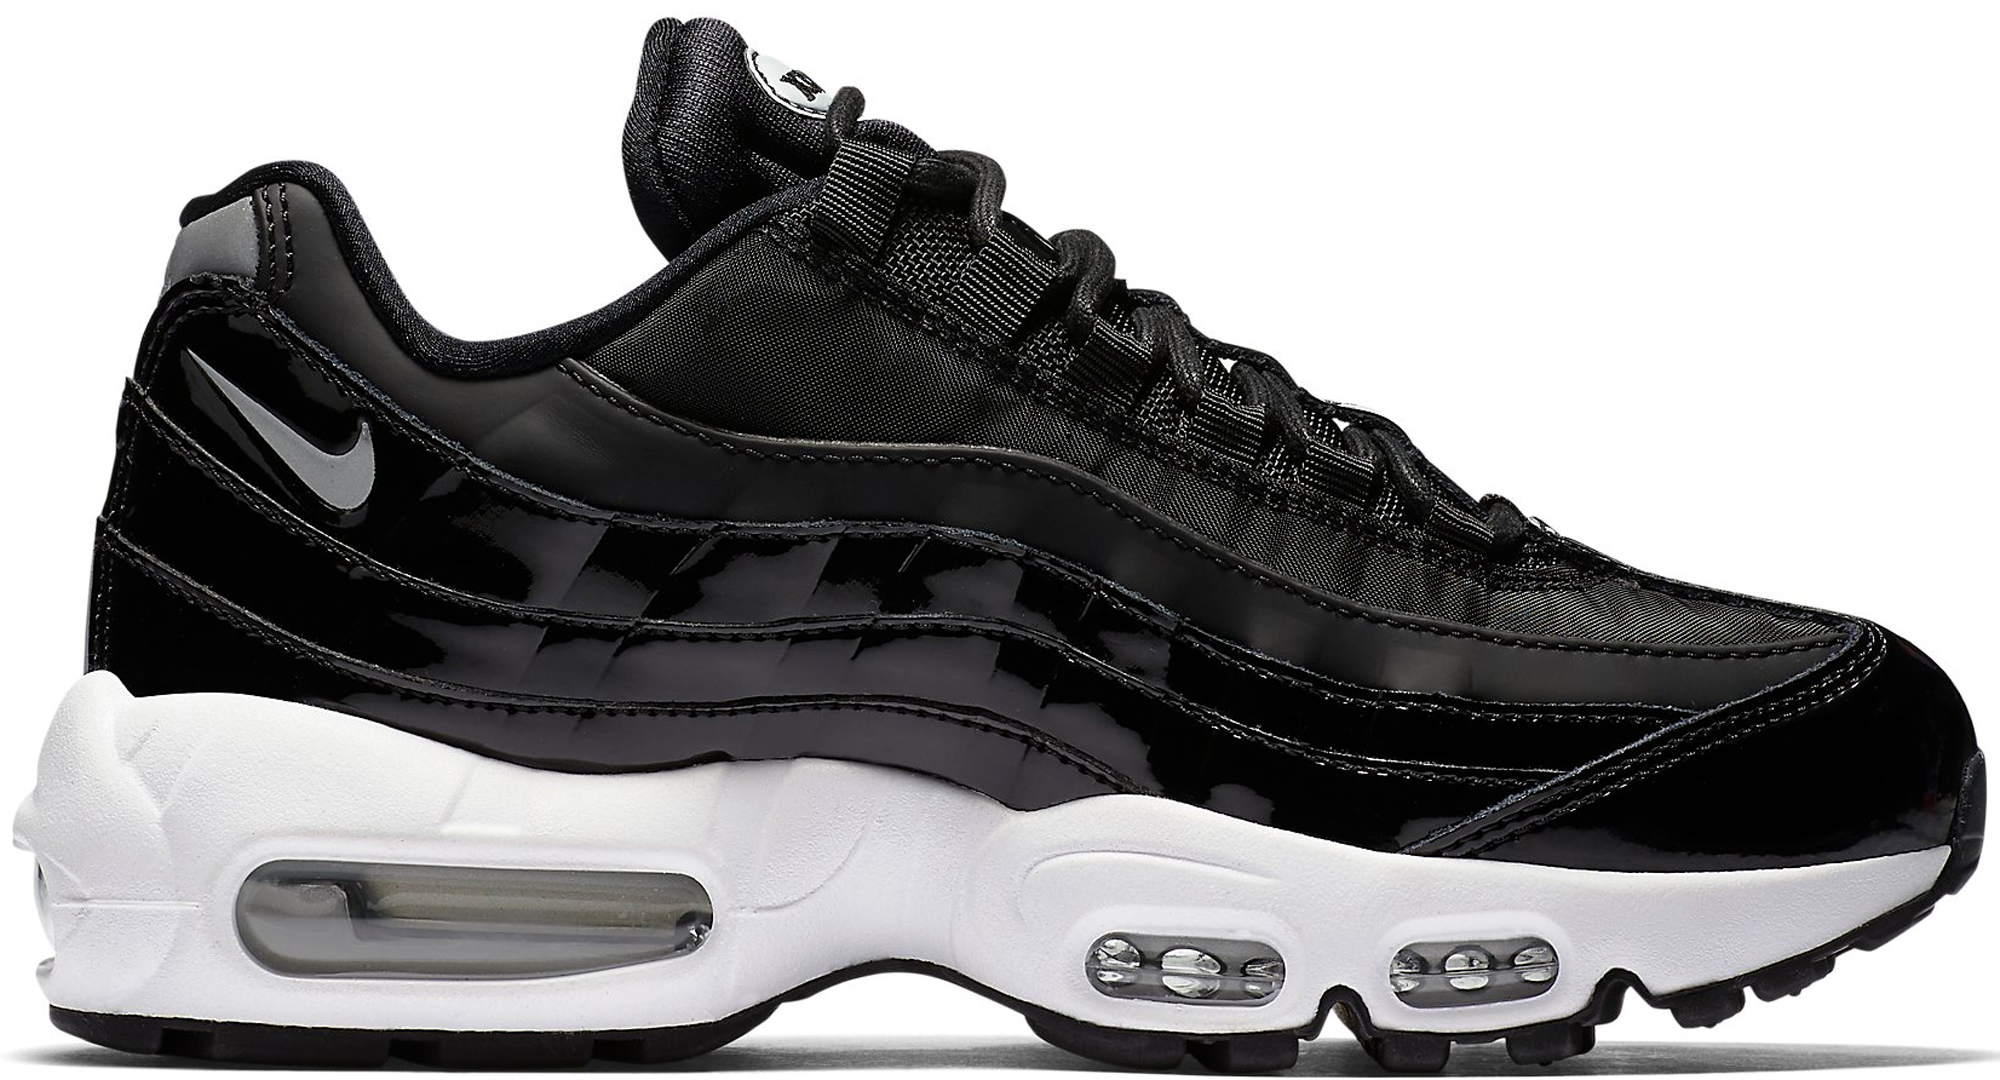 Women's Nike Air Max 95 Black Patent StockX News